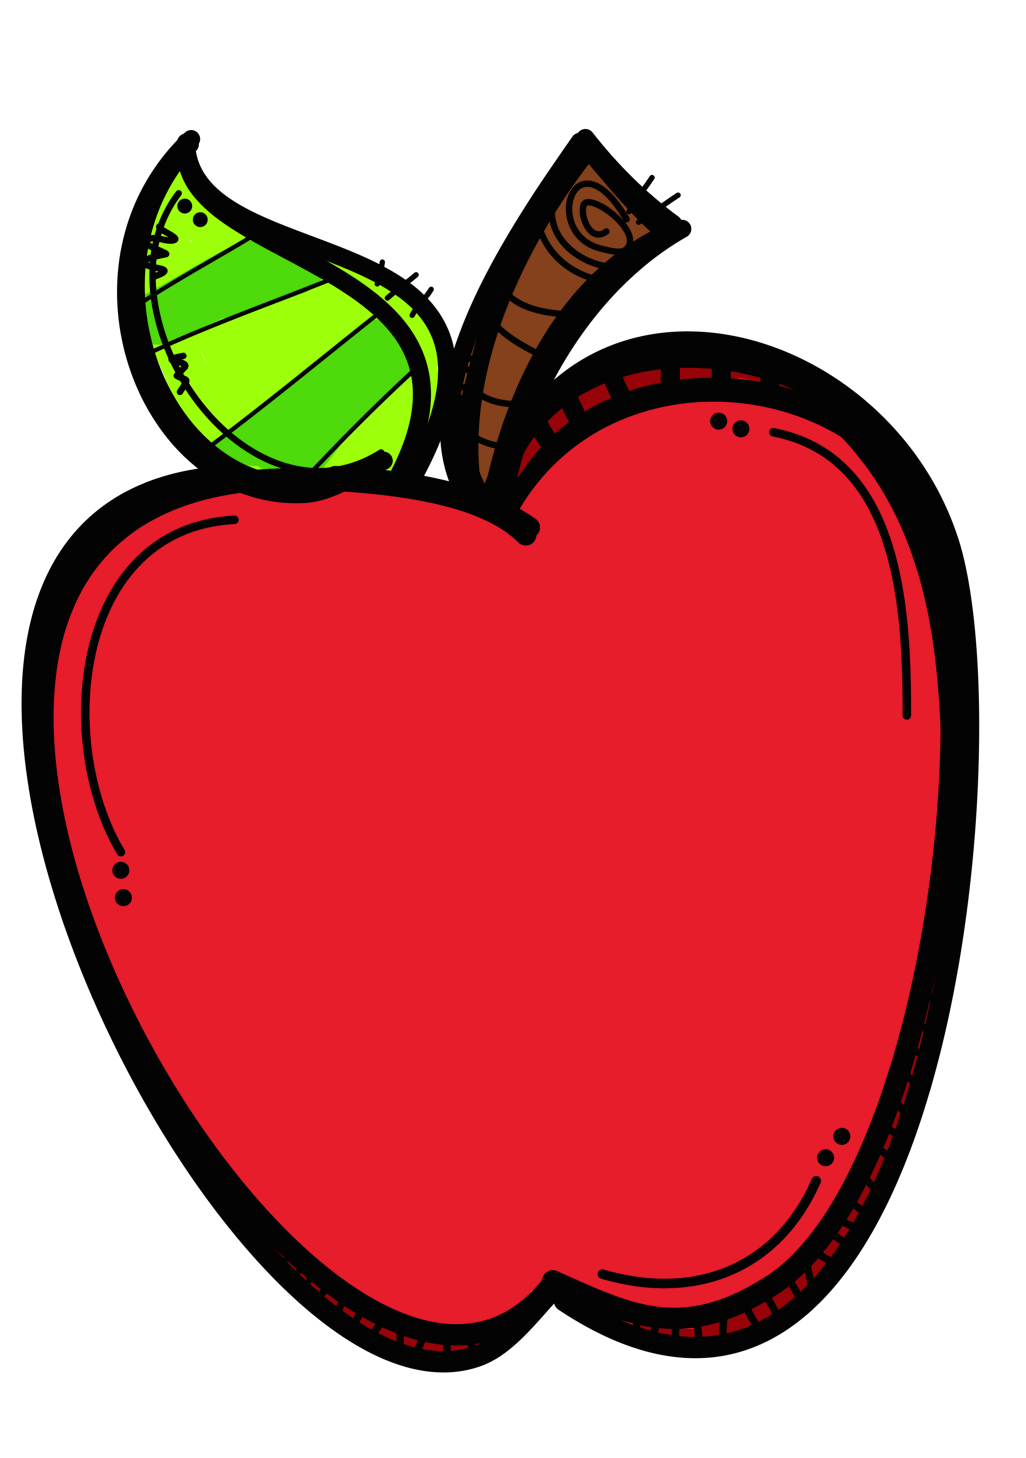 Back to school apple clipart clip art royalty free ✿*UY..QUE TE COMO*✿* | MELONHEADZ | Pinterest | Clip art, School ... clip art royalty free